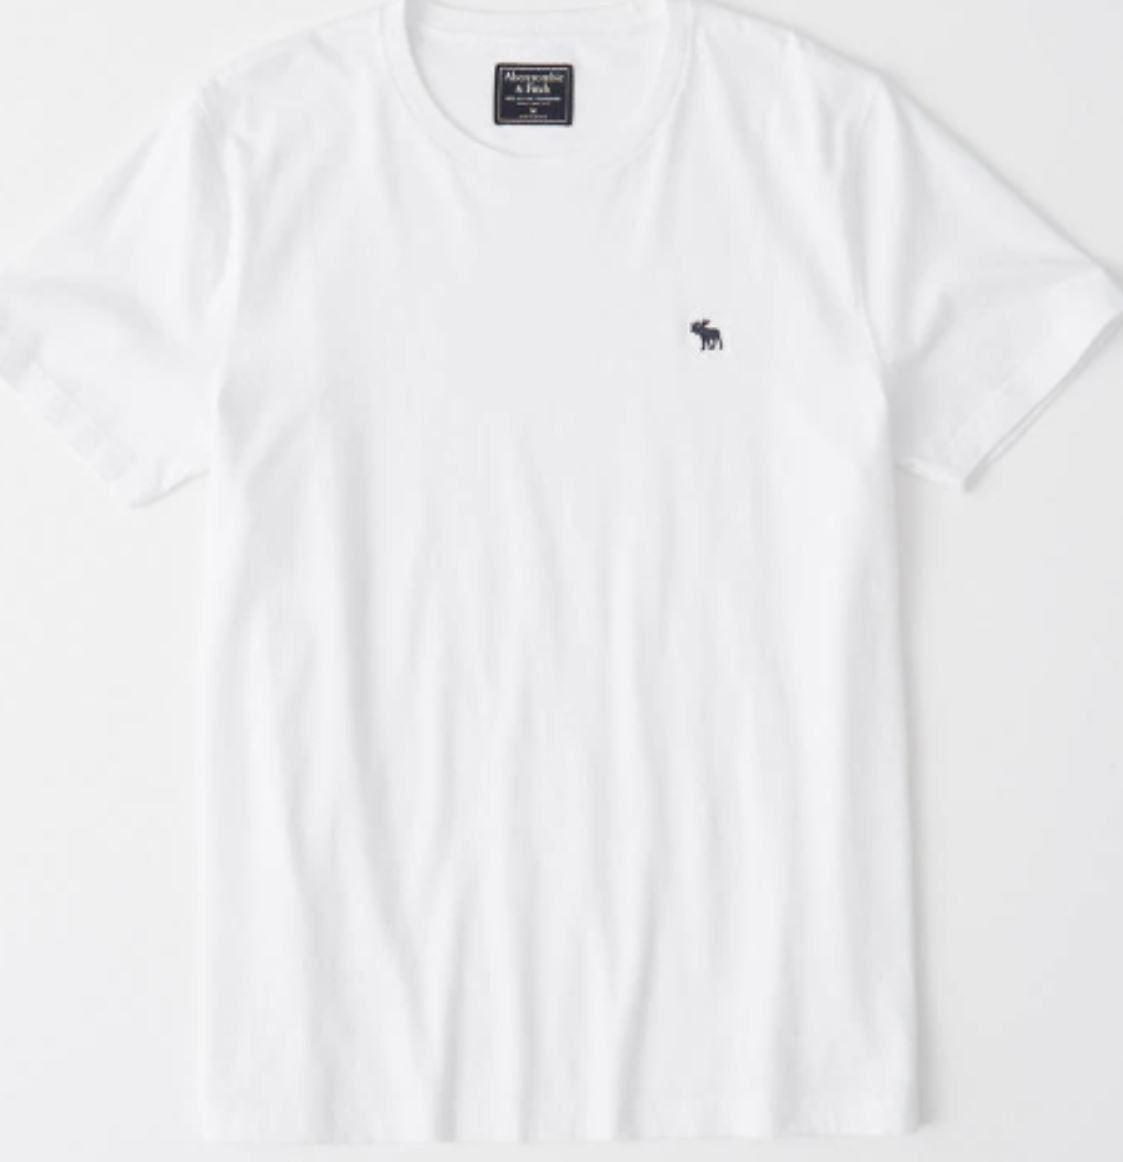 White T-Shirt from abercrombie.com